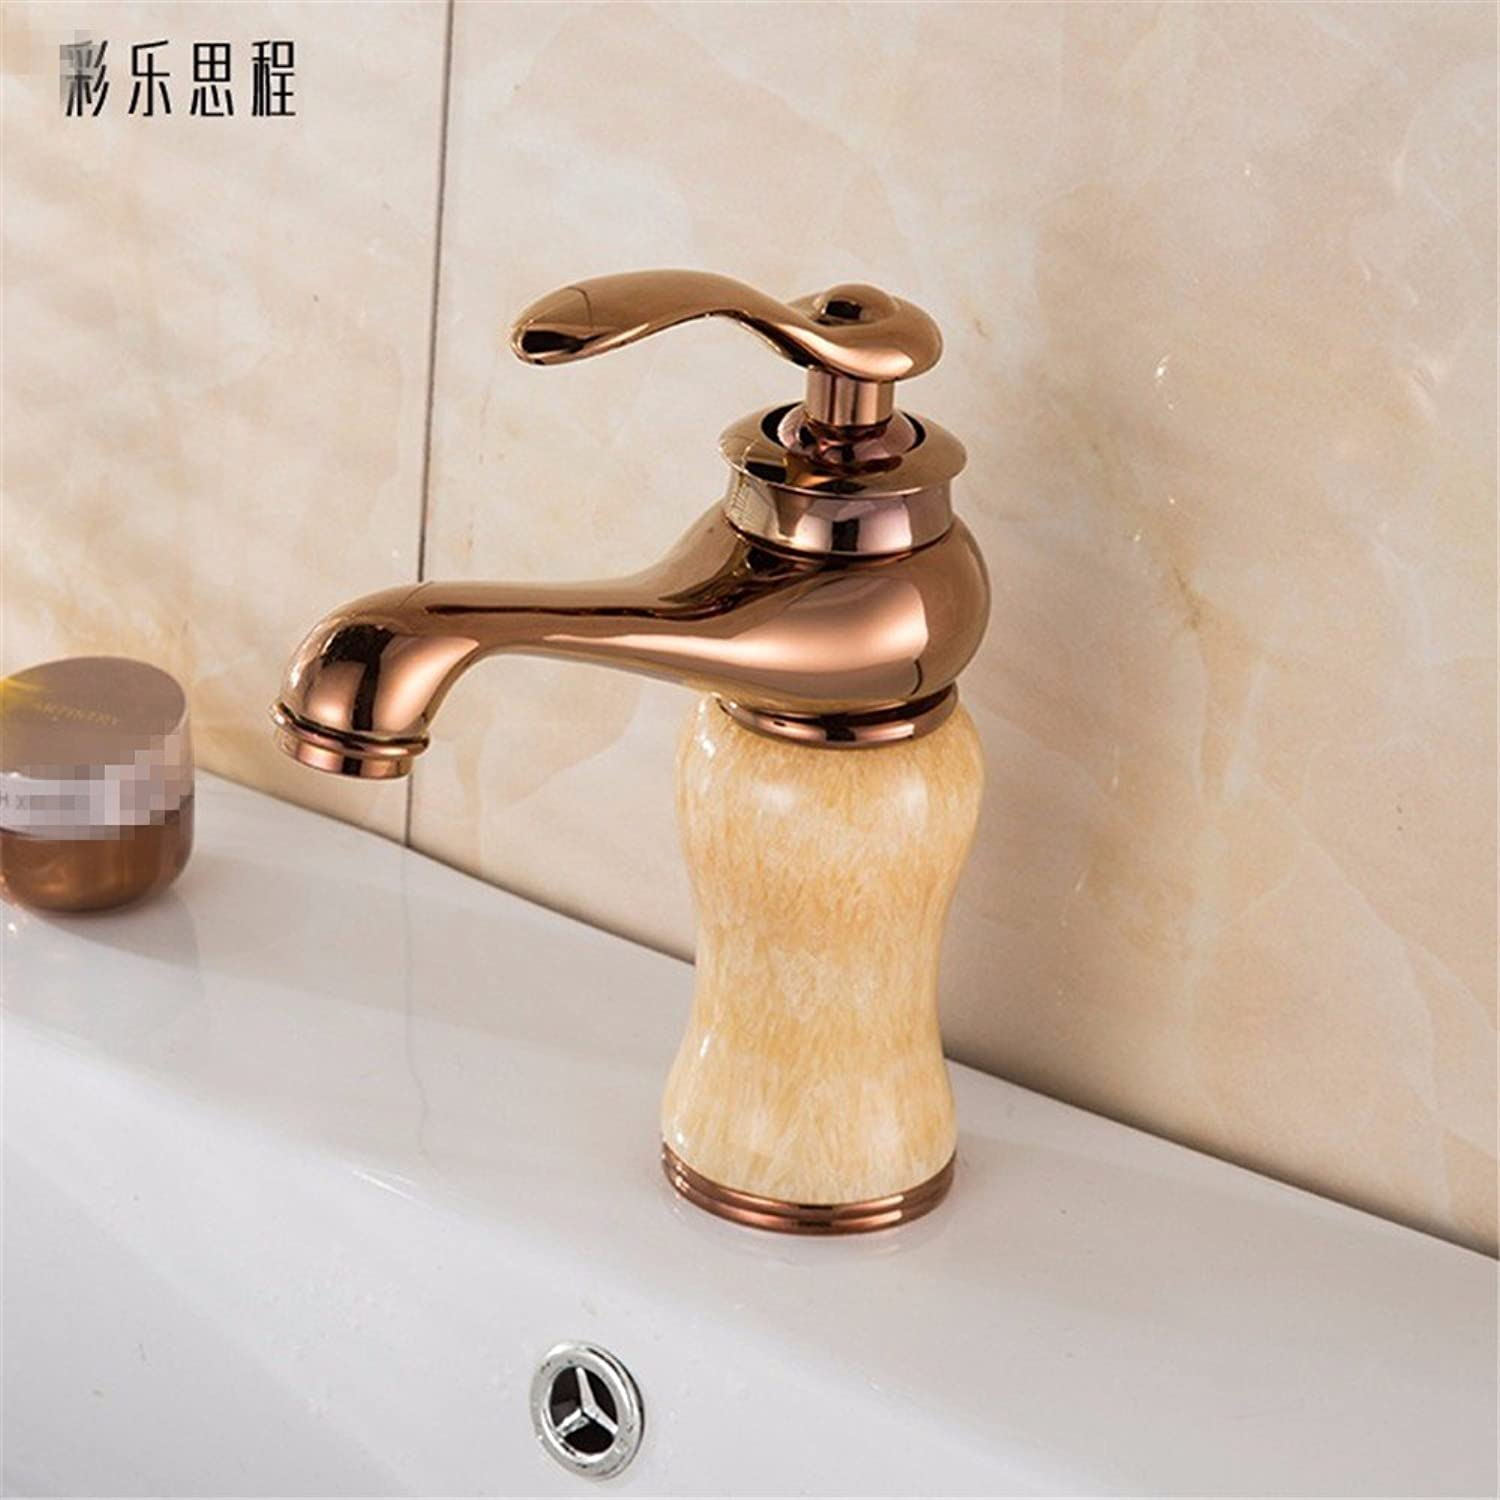 Bijjaladeva Antique Bathroom Sink Vessel Faucet Basin Mixer Tap All copper antique marble so old and cold water bathroom faucet single hole on the kitchen sink bathroom sink